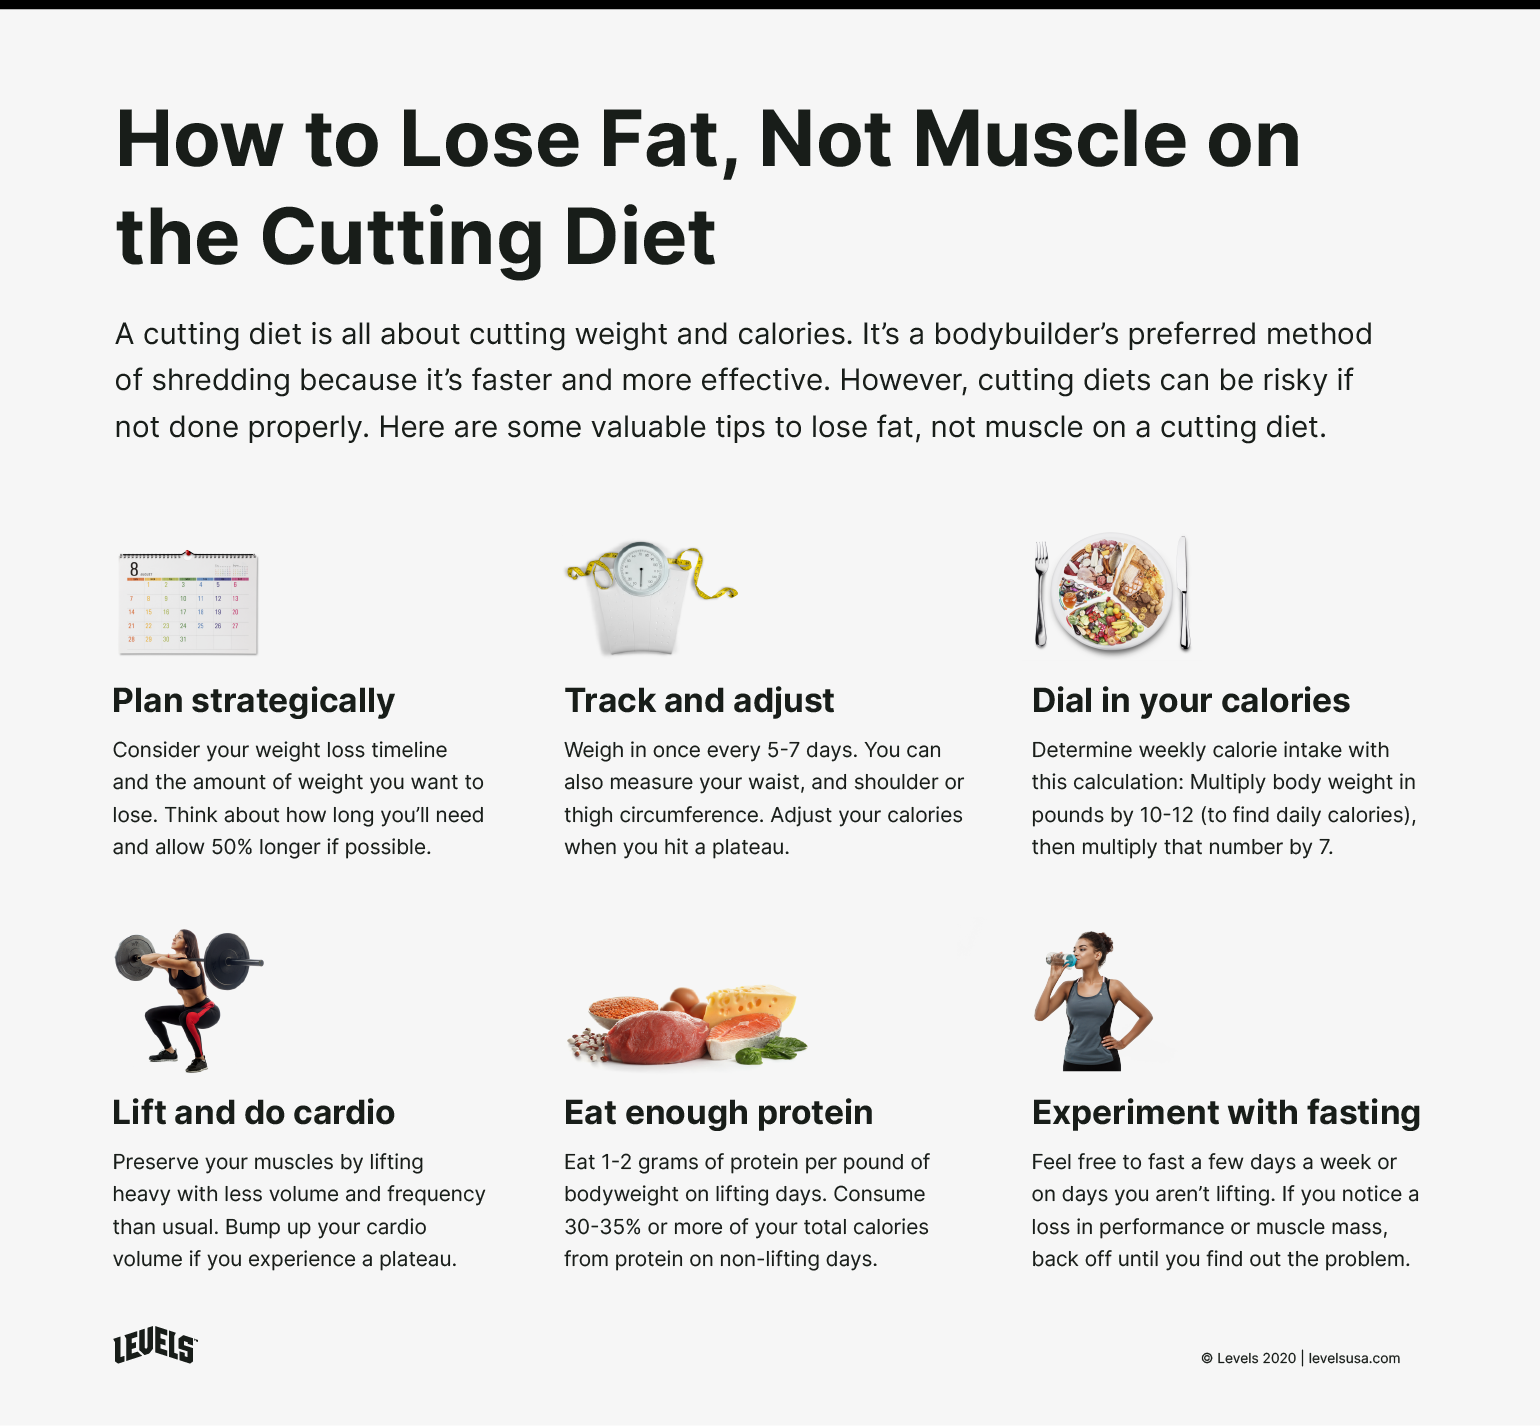 How to Lost Fat, Not Muscle on the Cutting Diet - Infographic